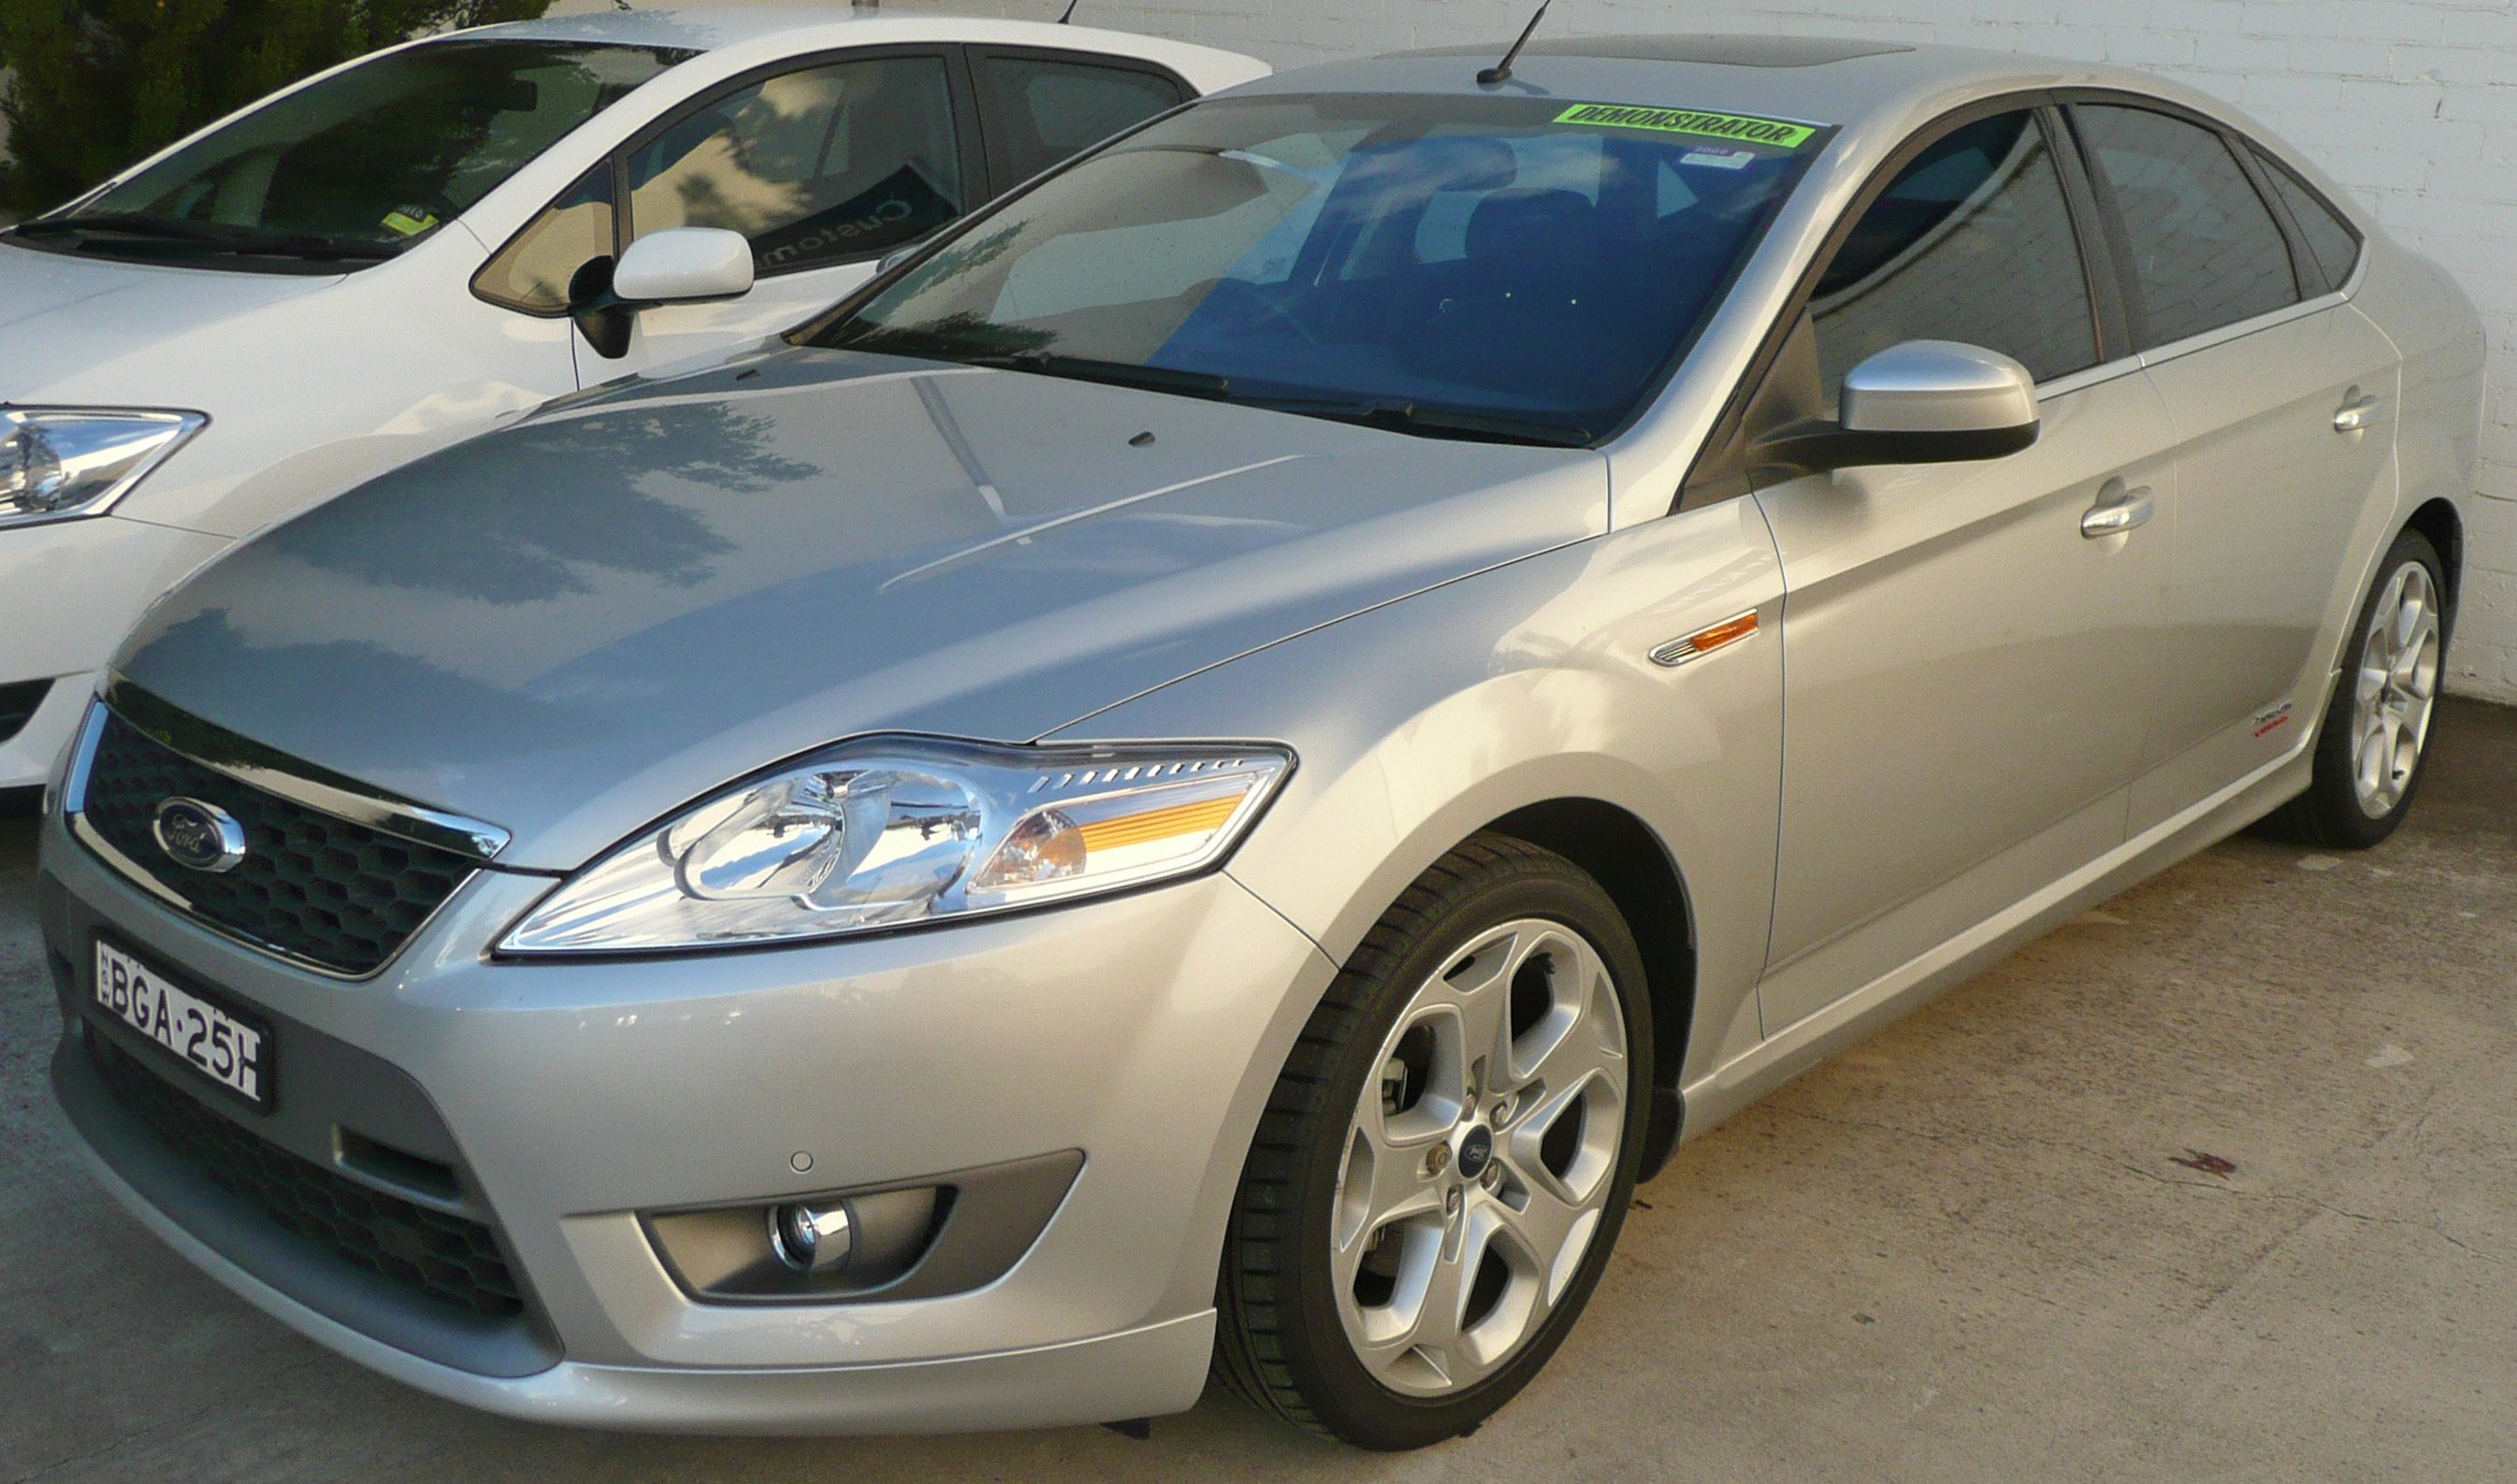 file 2007 2009 ford mondeo ma xr5 turbo hatchback wikimedia commons. Black Bedroom Furniture Sets. Home Design Ideas